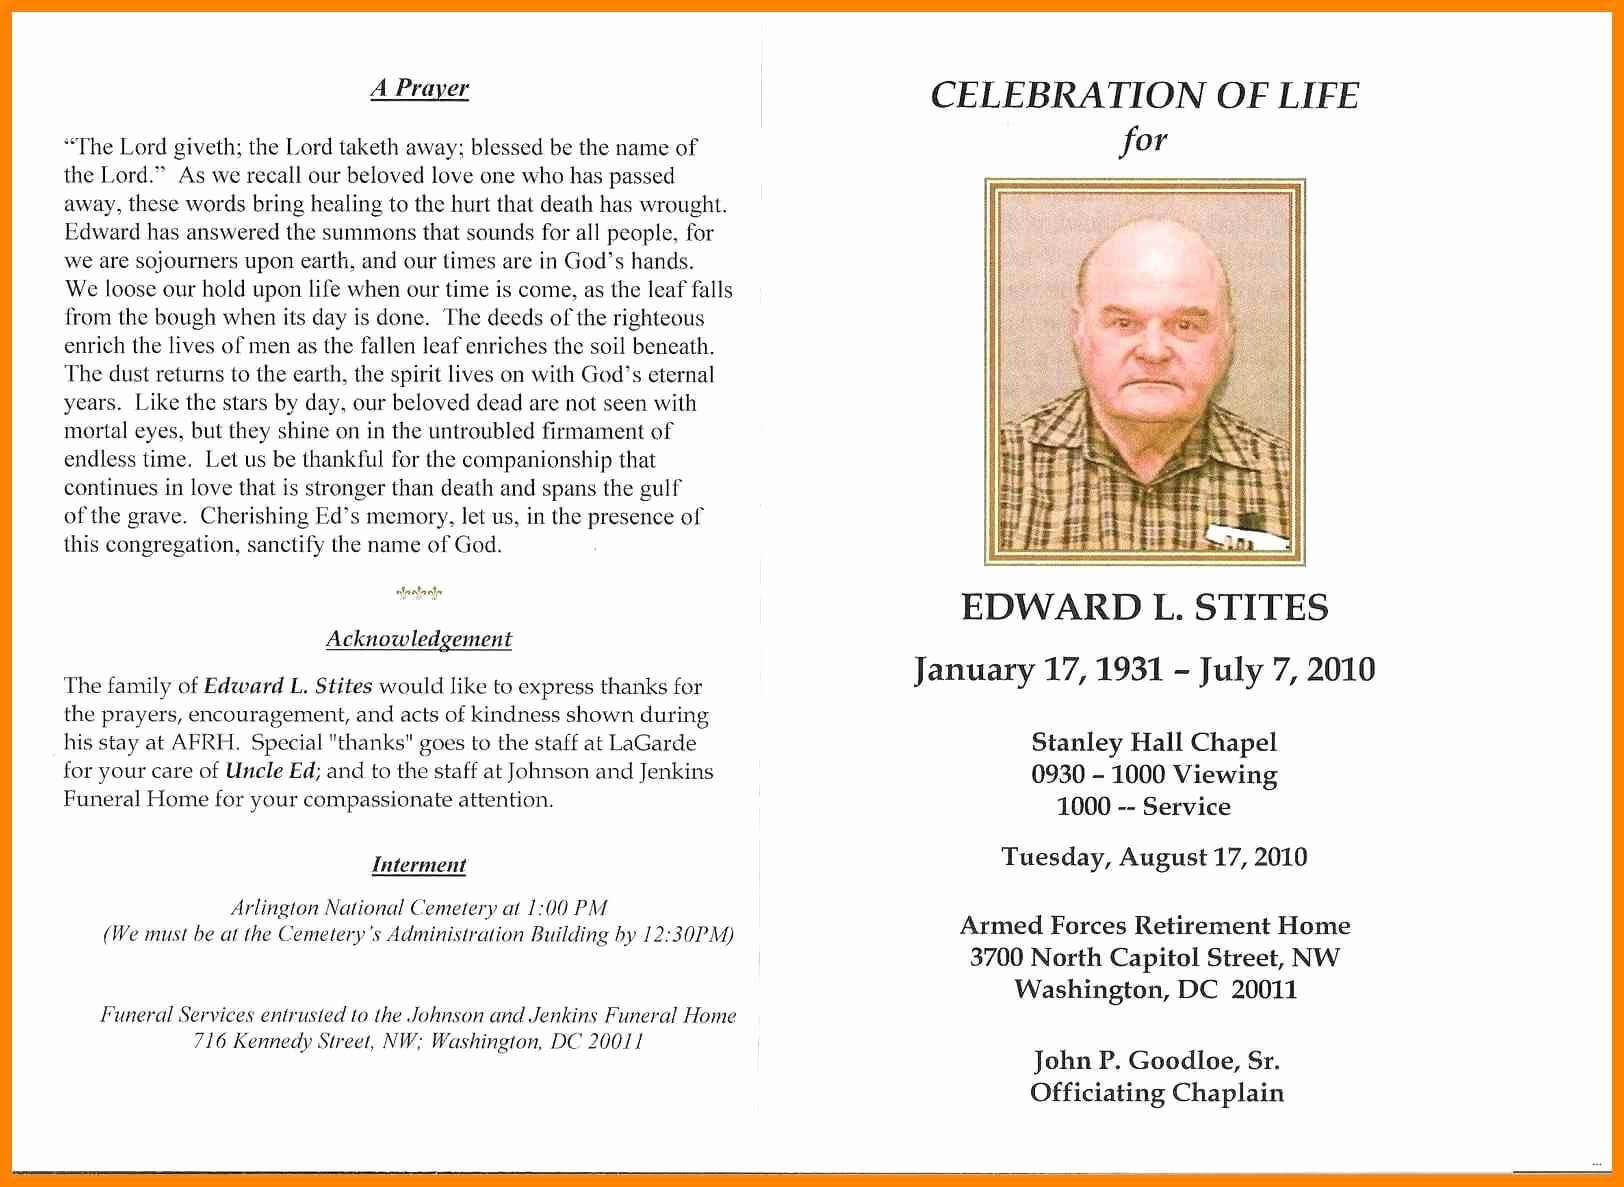 In Memoriam Cards Template Free Celebration Of Life Program Pertaining To Remembrance Cards Template Free